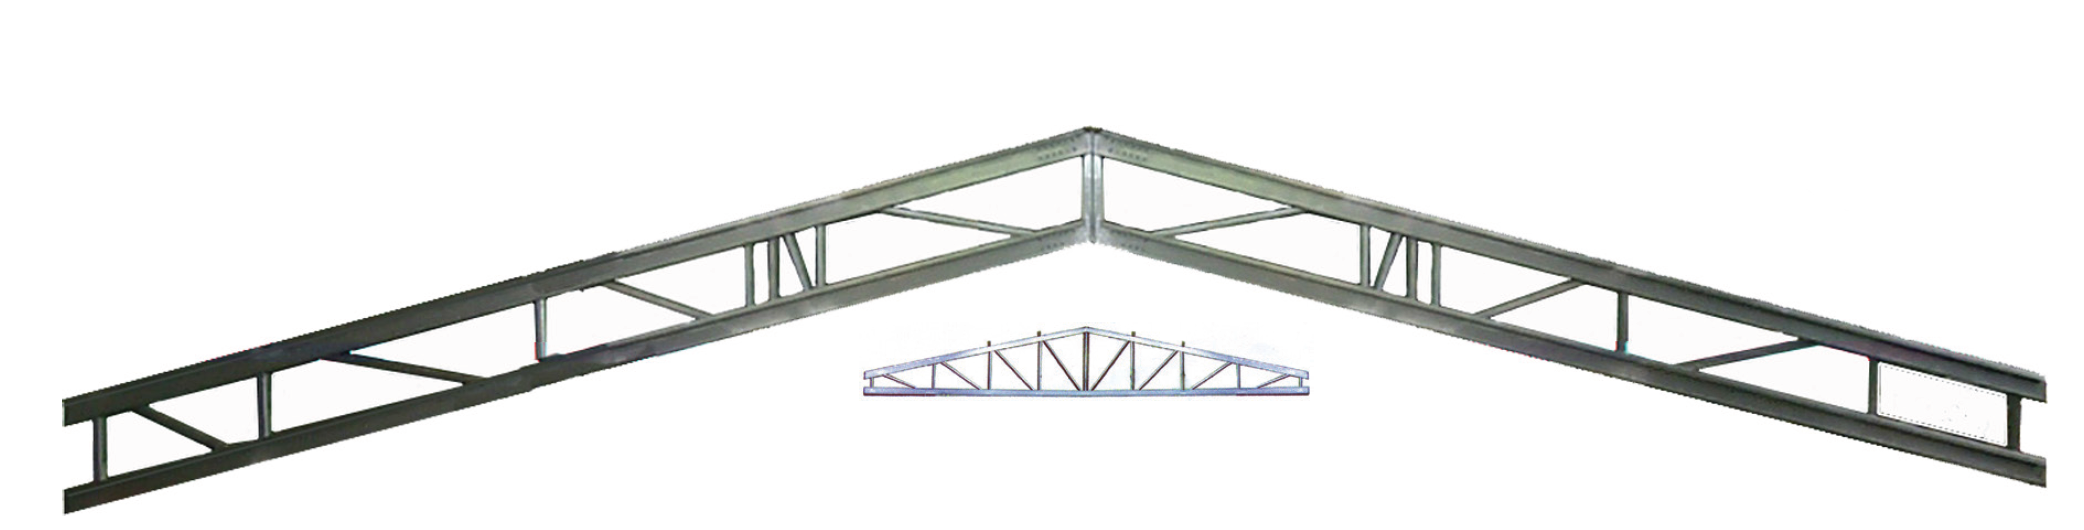 Harvard Products is now a distributor for Steel-Span, Inc., the leader in  Galvanized Steel Building Trusses, Columns, Girts, Purlins and other components.  Steel-Span's reputation as a manufacturer of airplane hangers is well known.